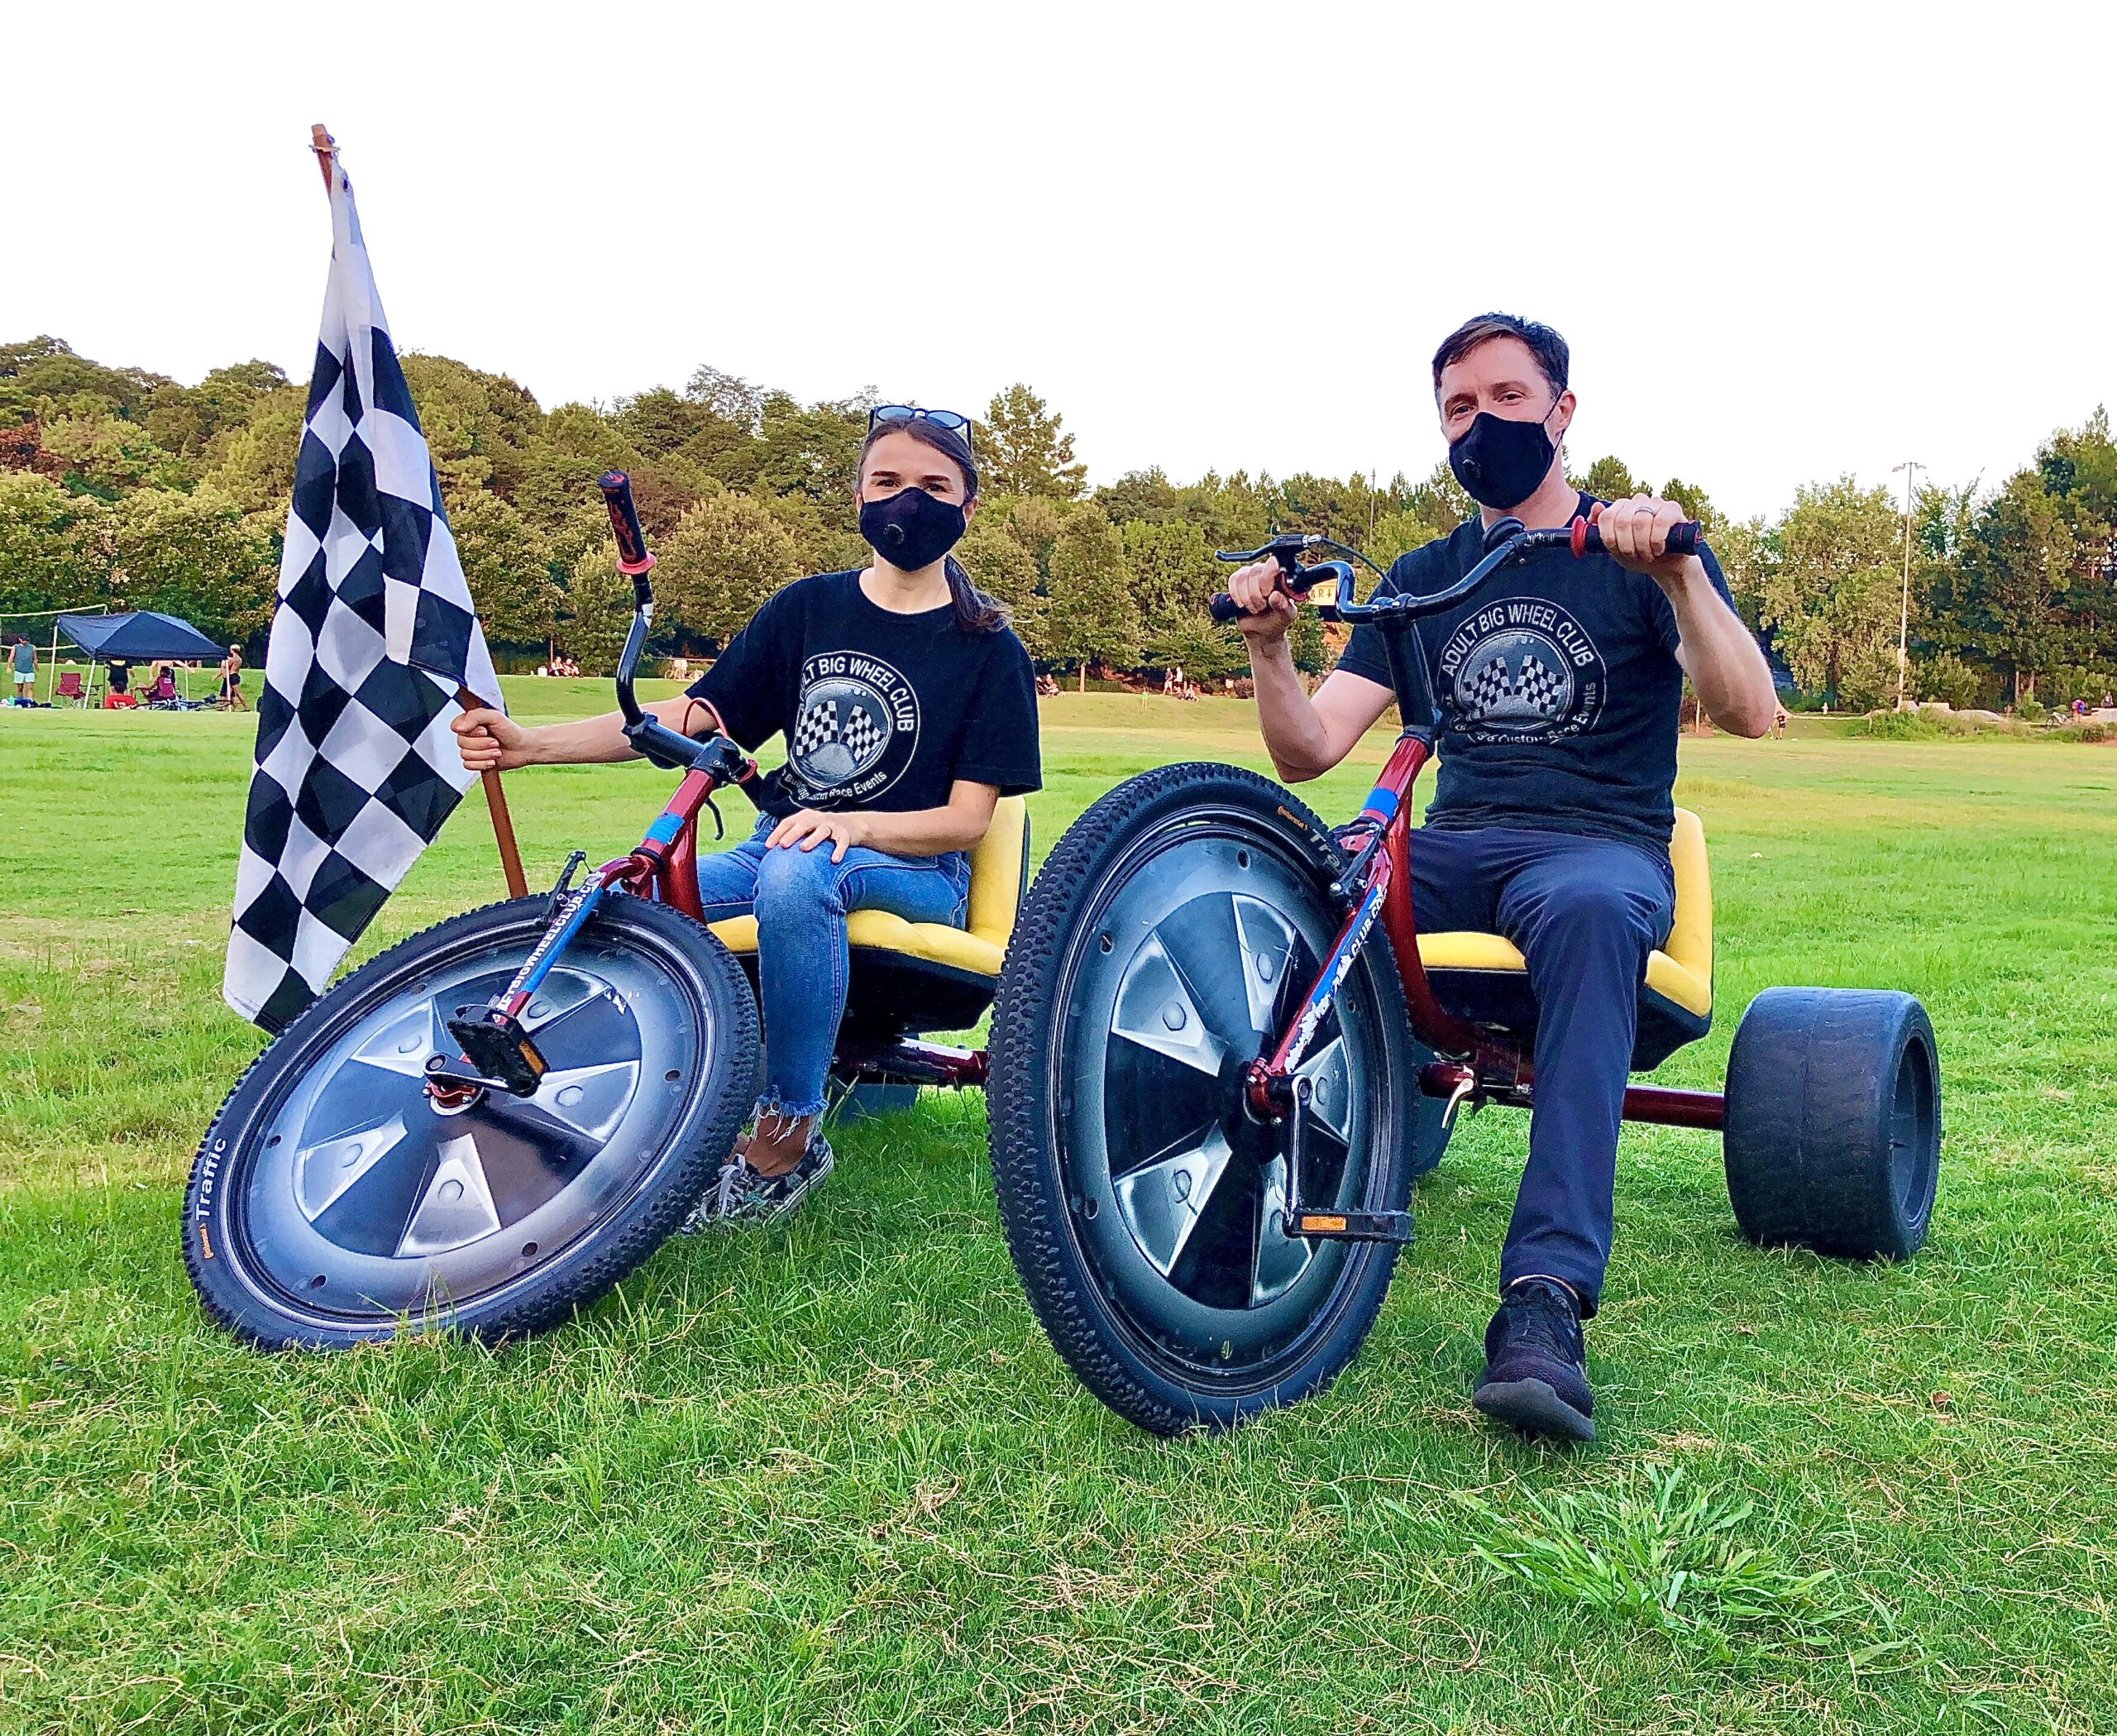 Owners of Adult Big Wheel Club Team Building and Custom Race Events, Danny and Marta